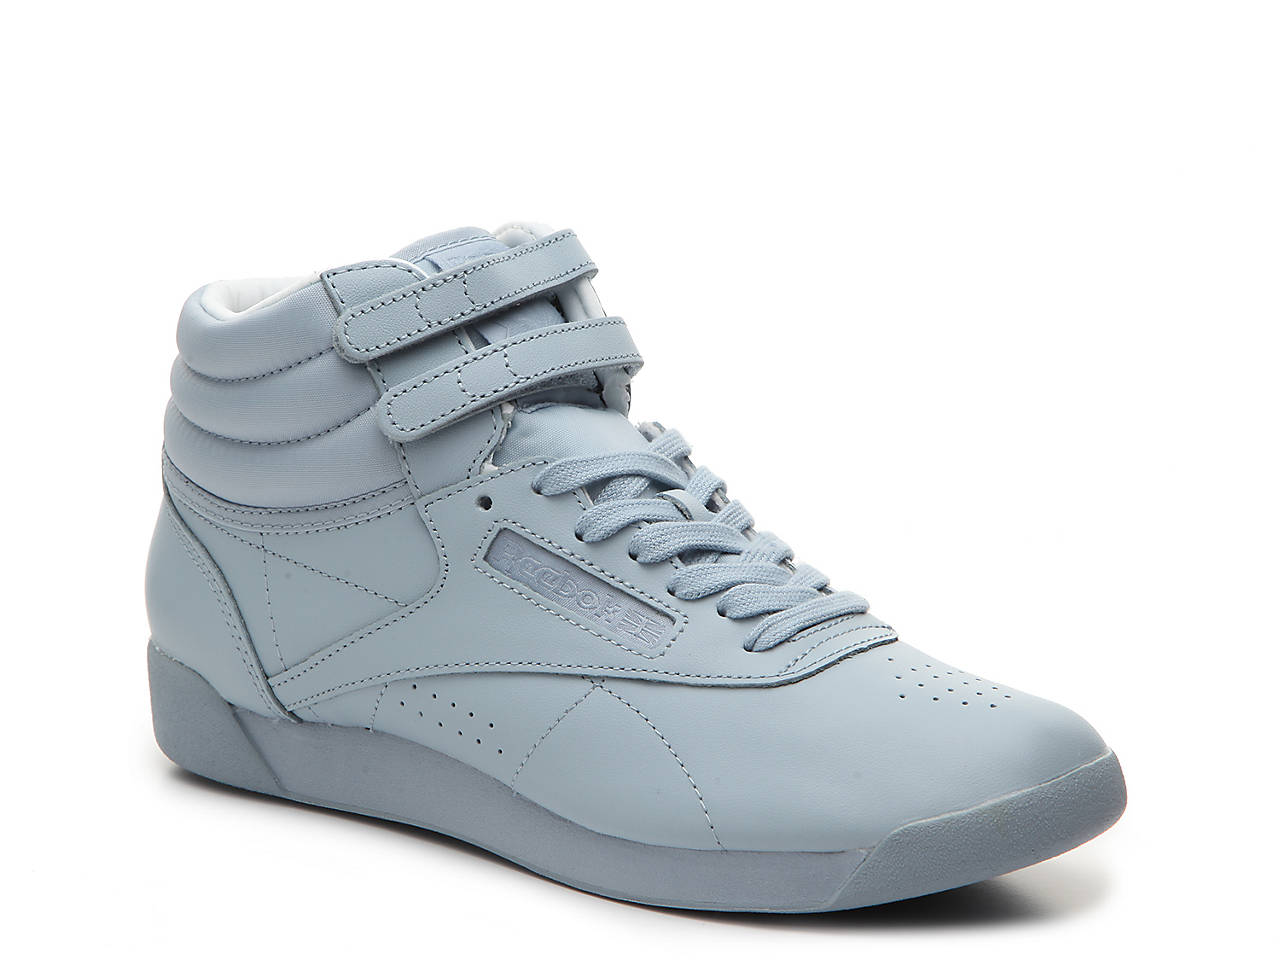 48c9494e0e74b Reebok Freestyle Hi High-Top Sneaker - Women s Women s Shoes